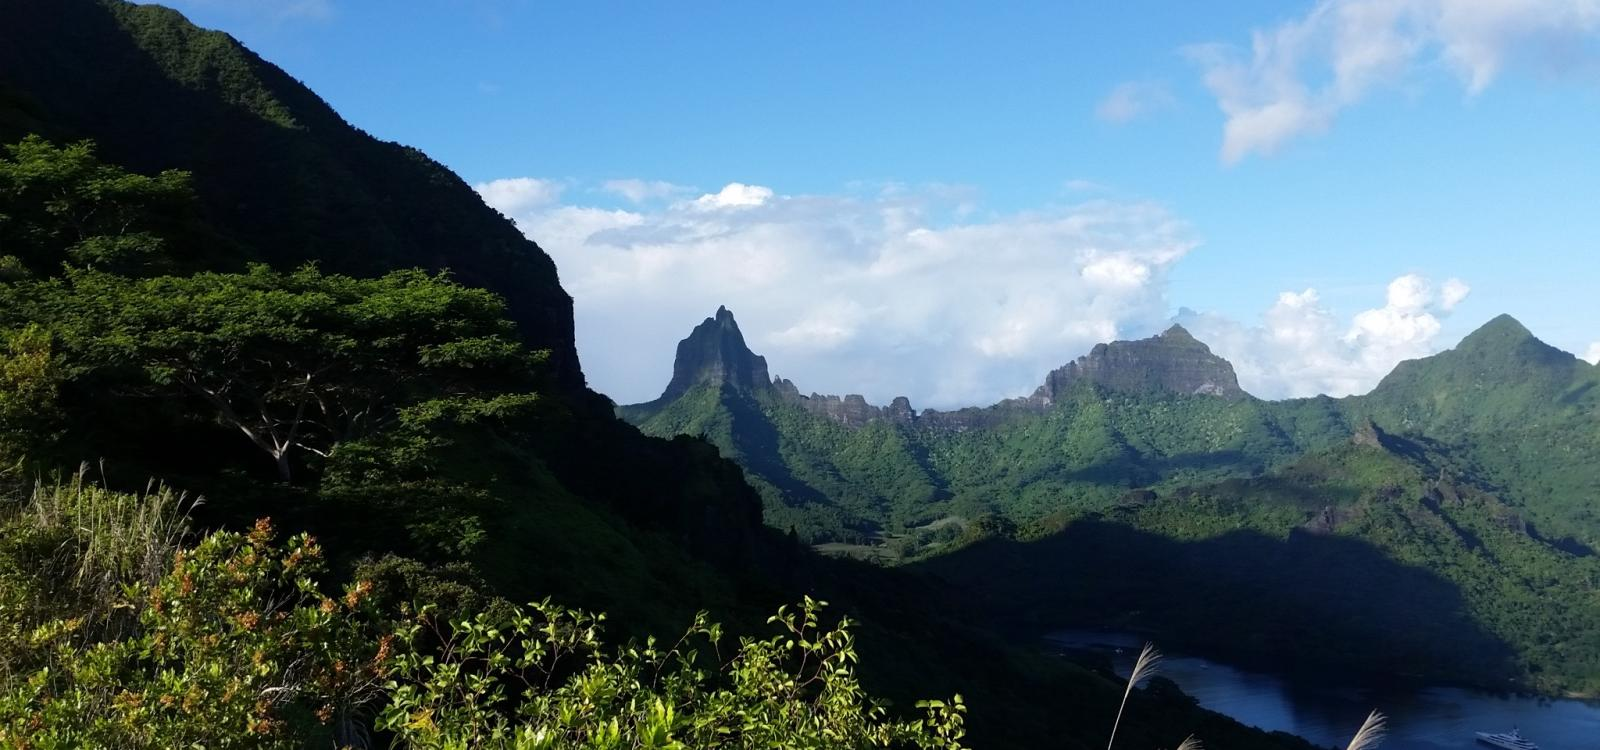 info about Moorea